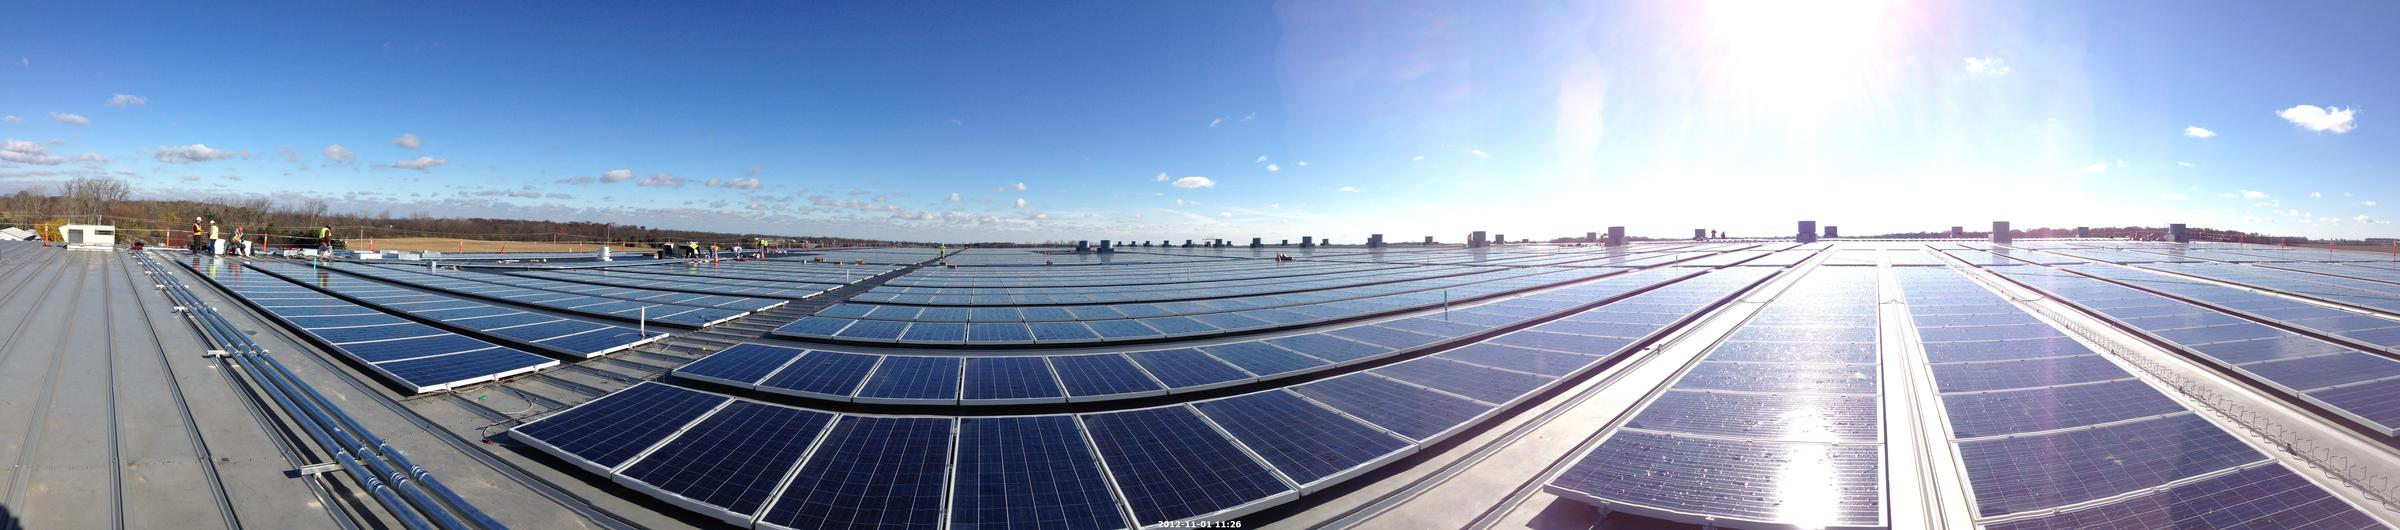 why some big businesses support the clean power plan michigan radio the solar array on the staples ohio distribution center